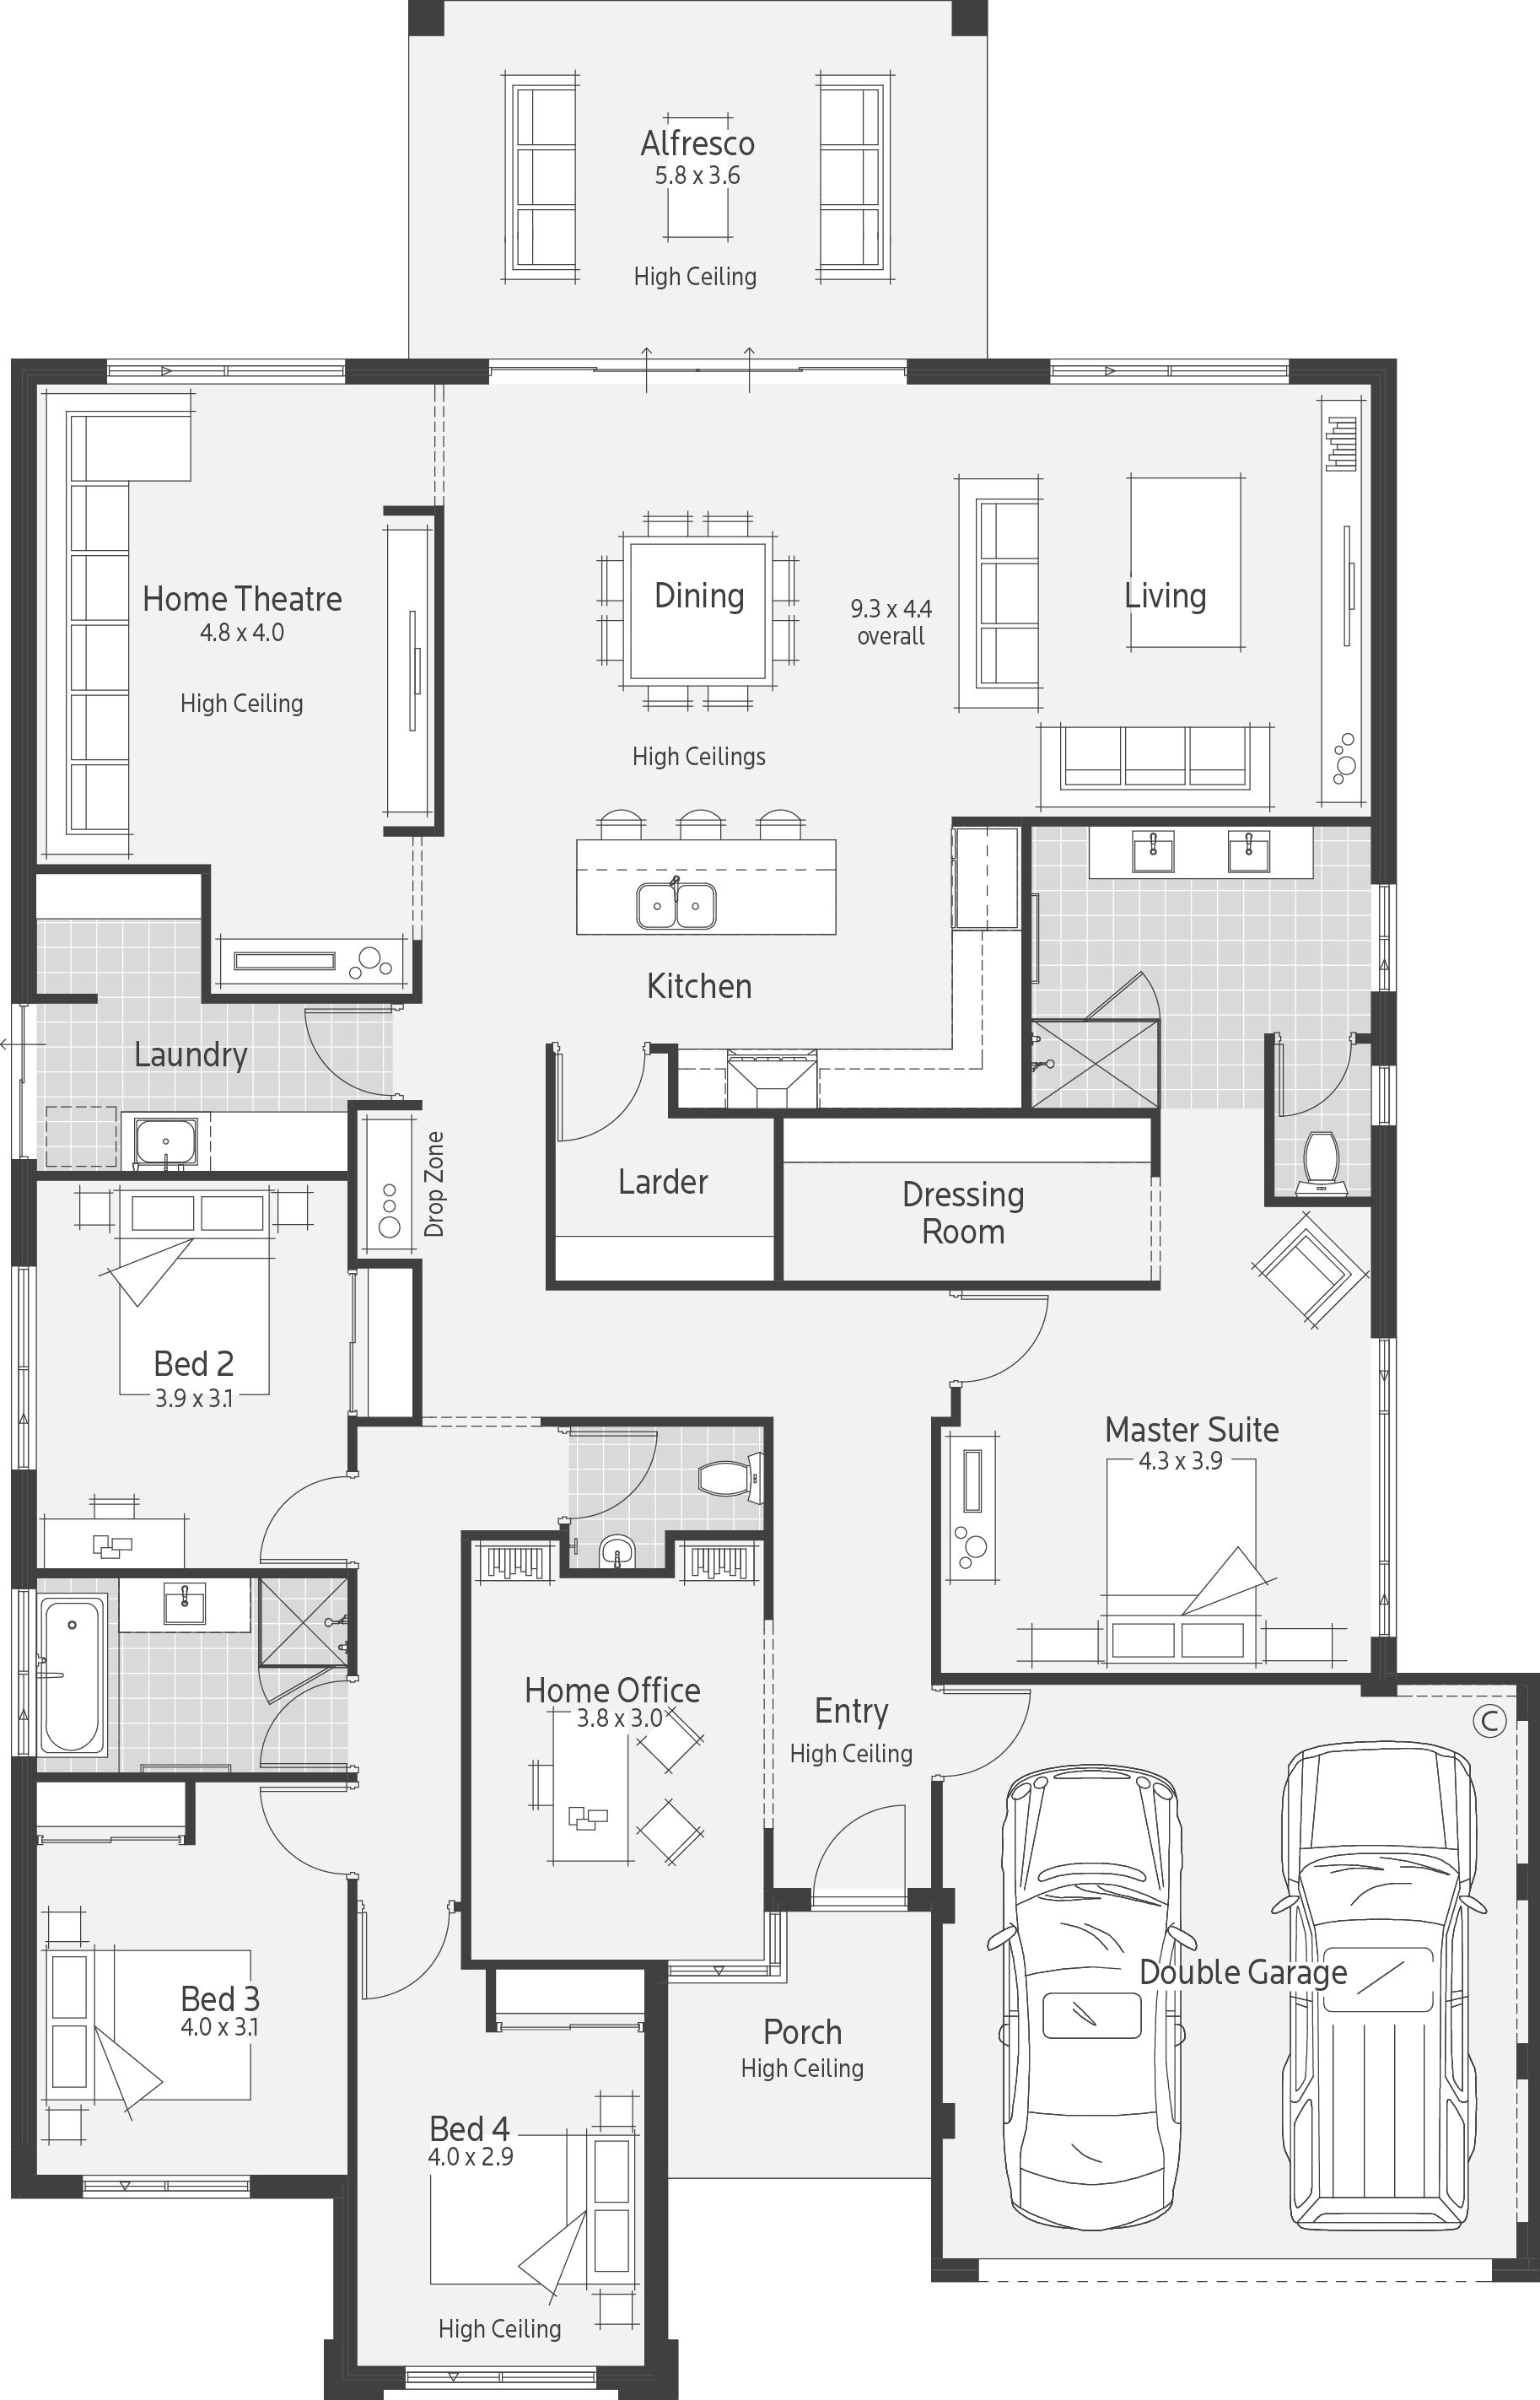 Delete Bedrooms Three And Four Expand Garage Into